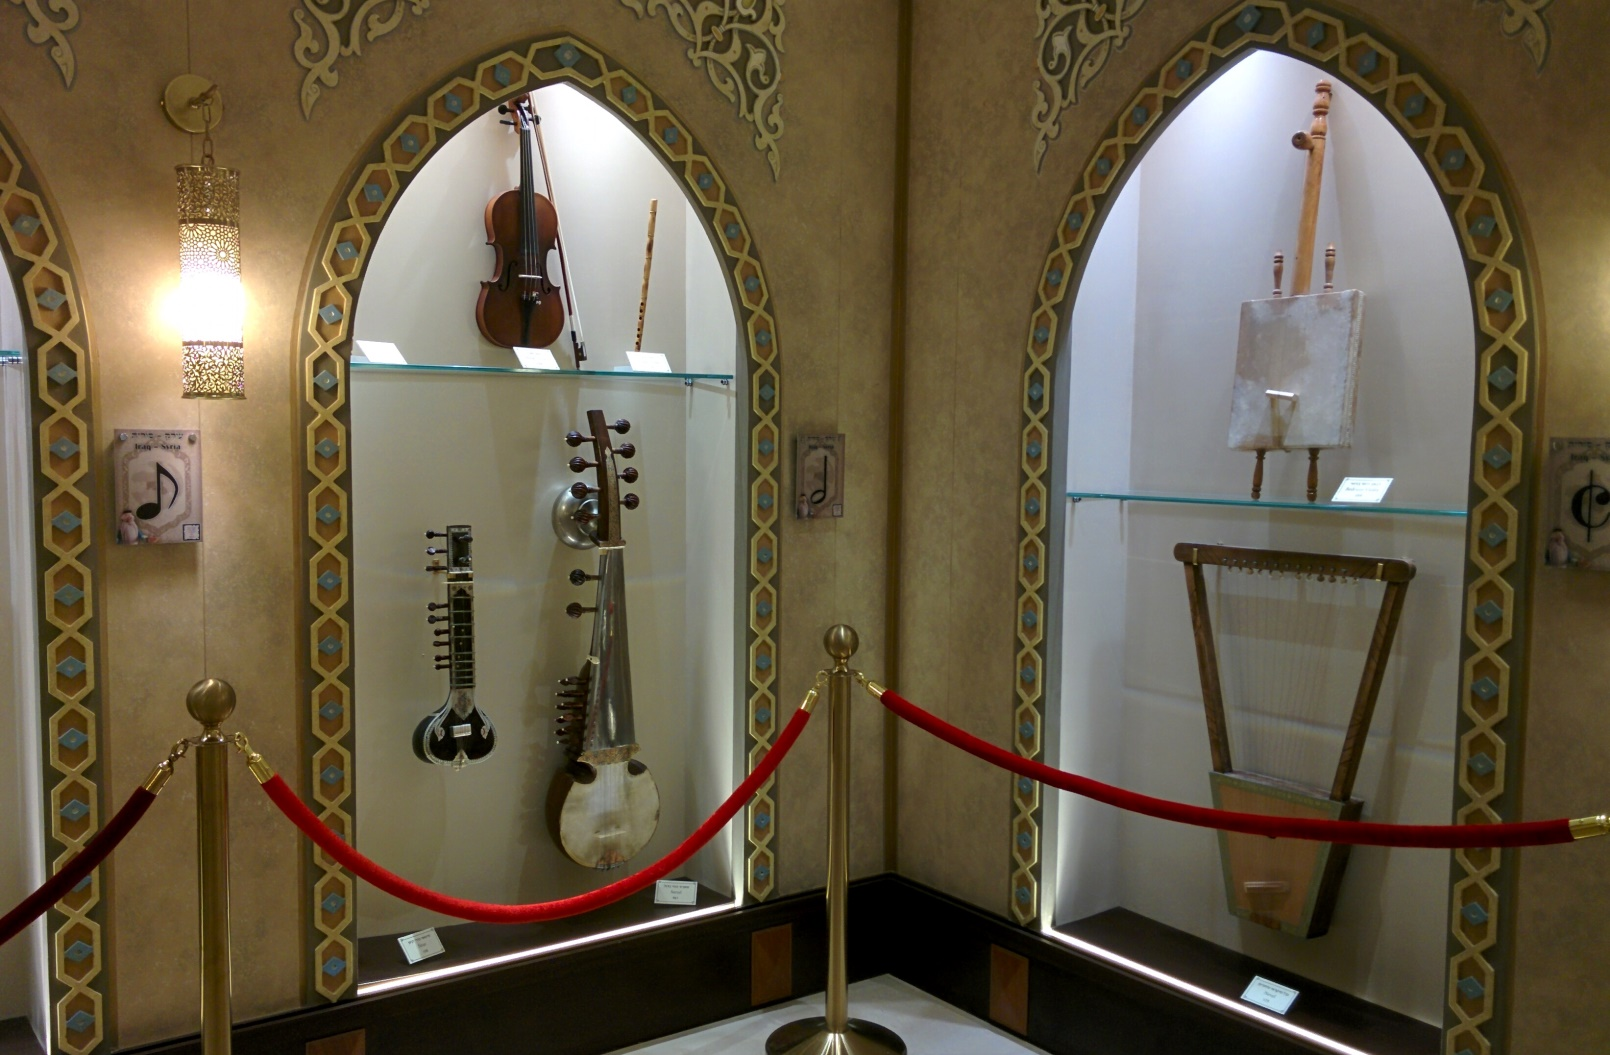 Cap musicmuseum-instruments: Some of the unusual authentic instruments at the Hebrew Music Museum in Jerusalem. Photo by Abigail Klein Leichman